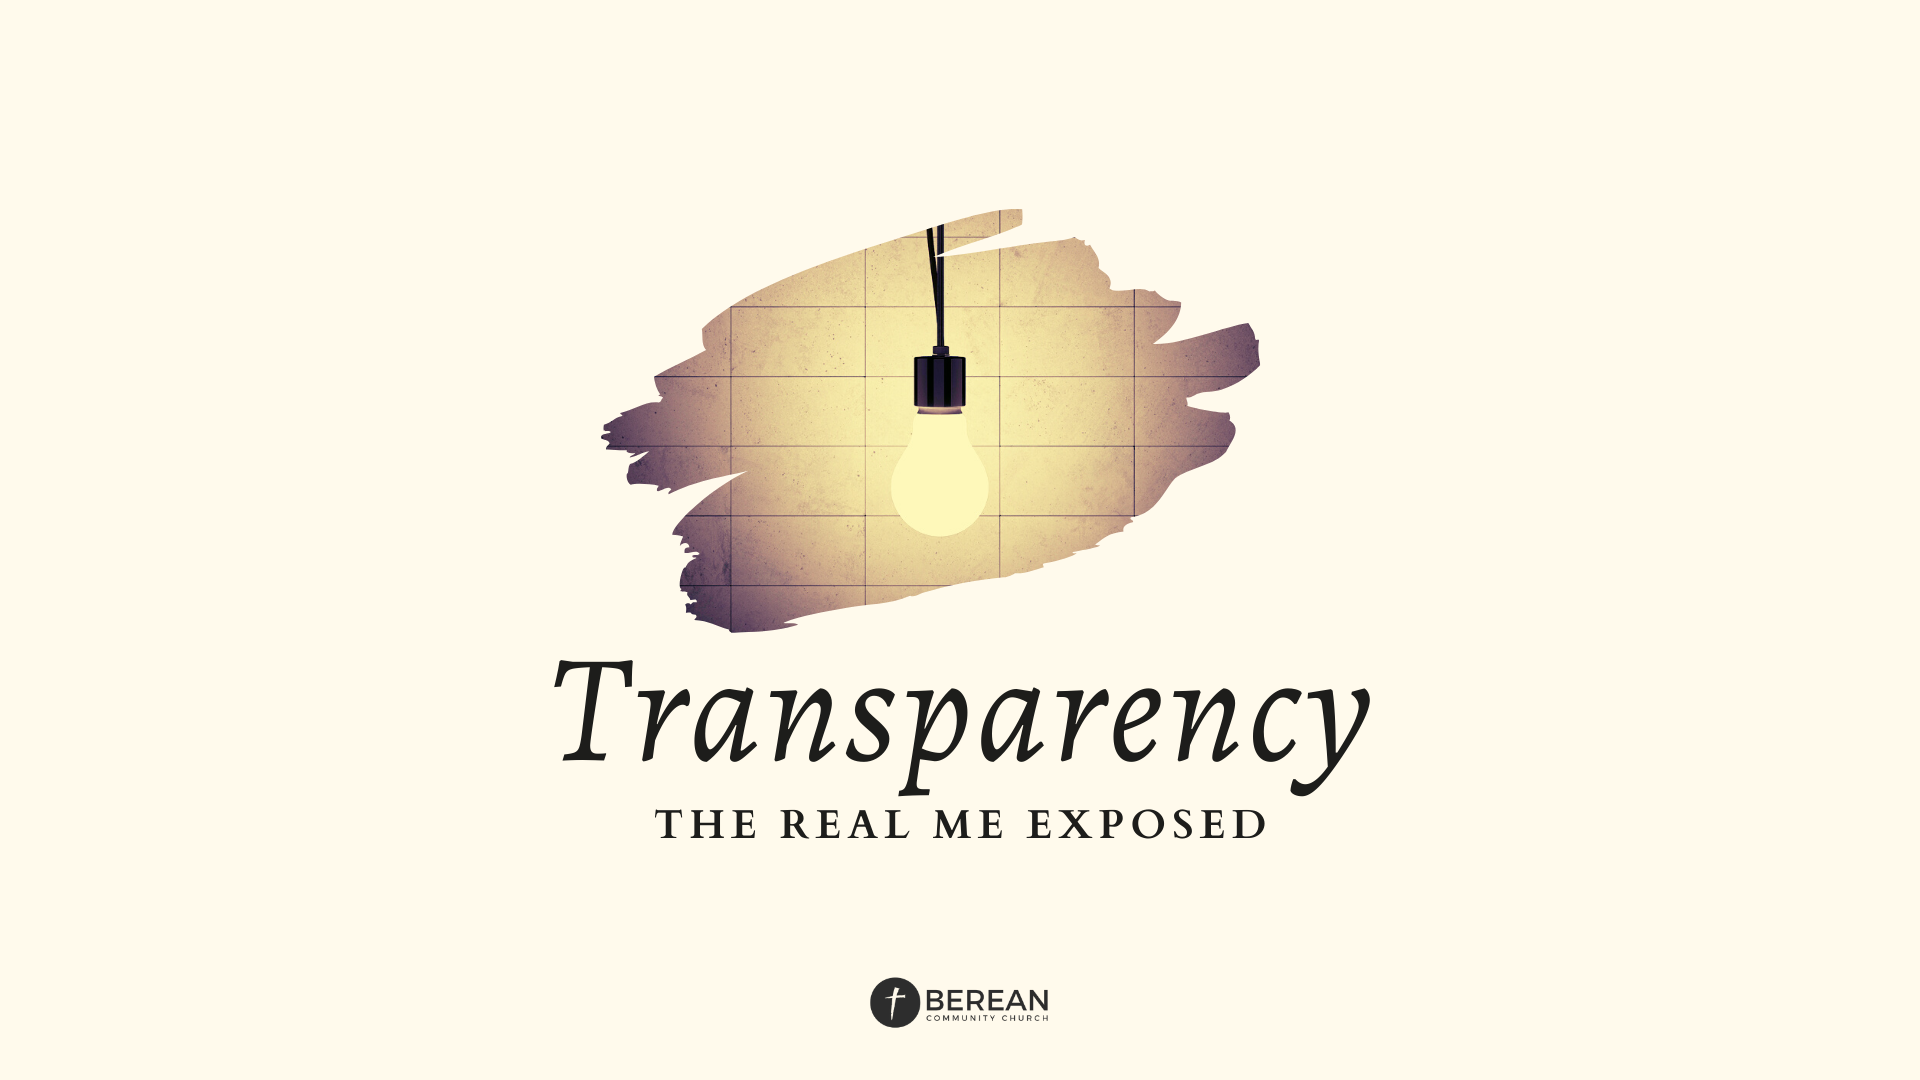 Transparency (The Real Me Exposed) IV